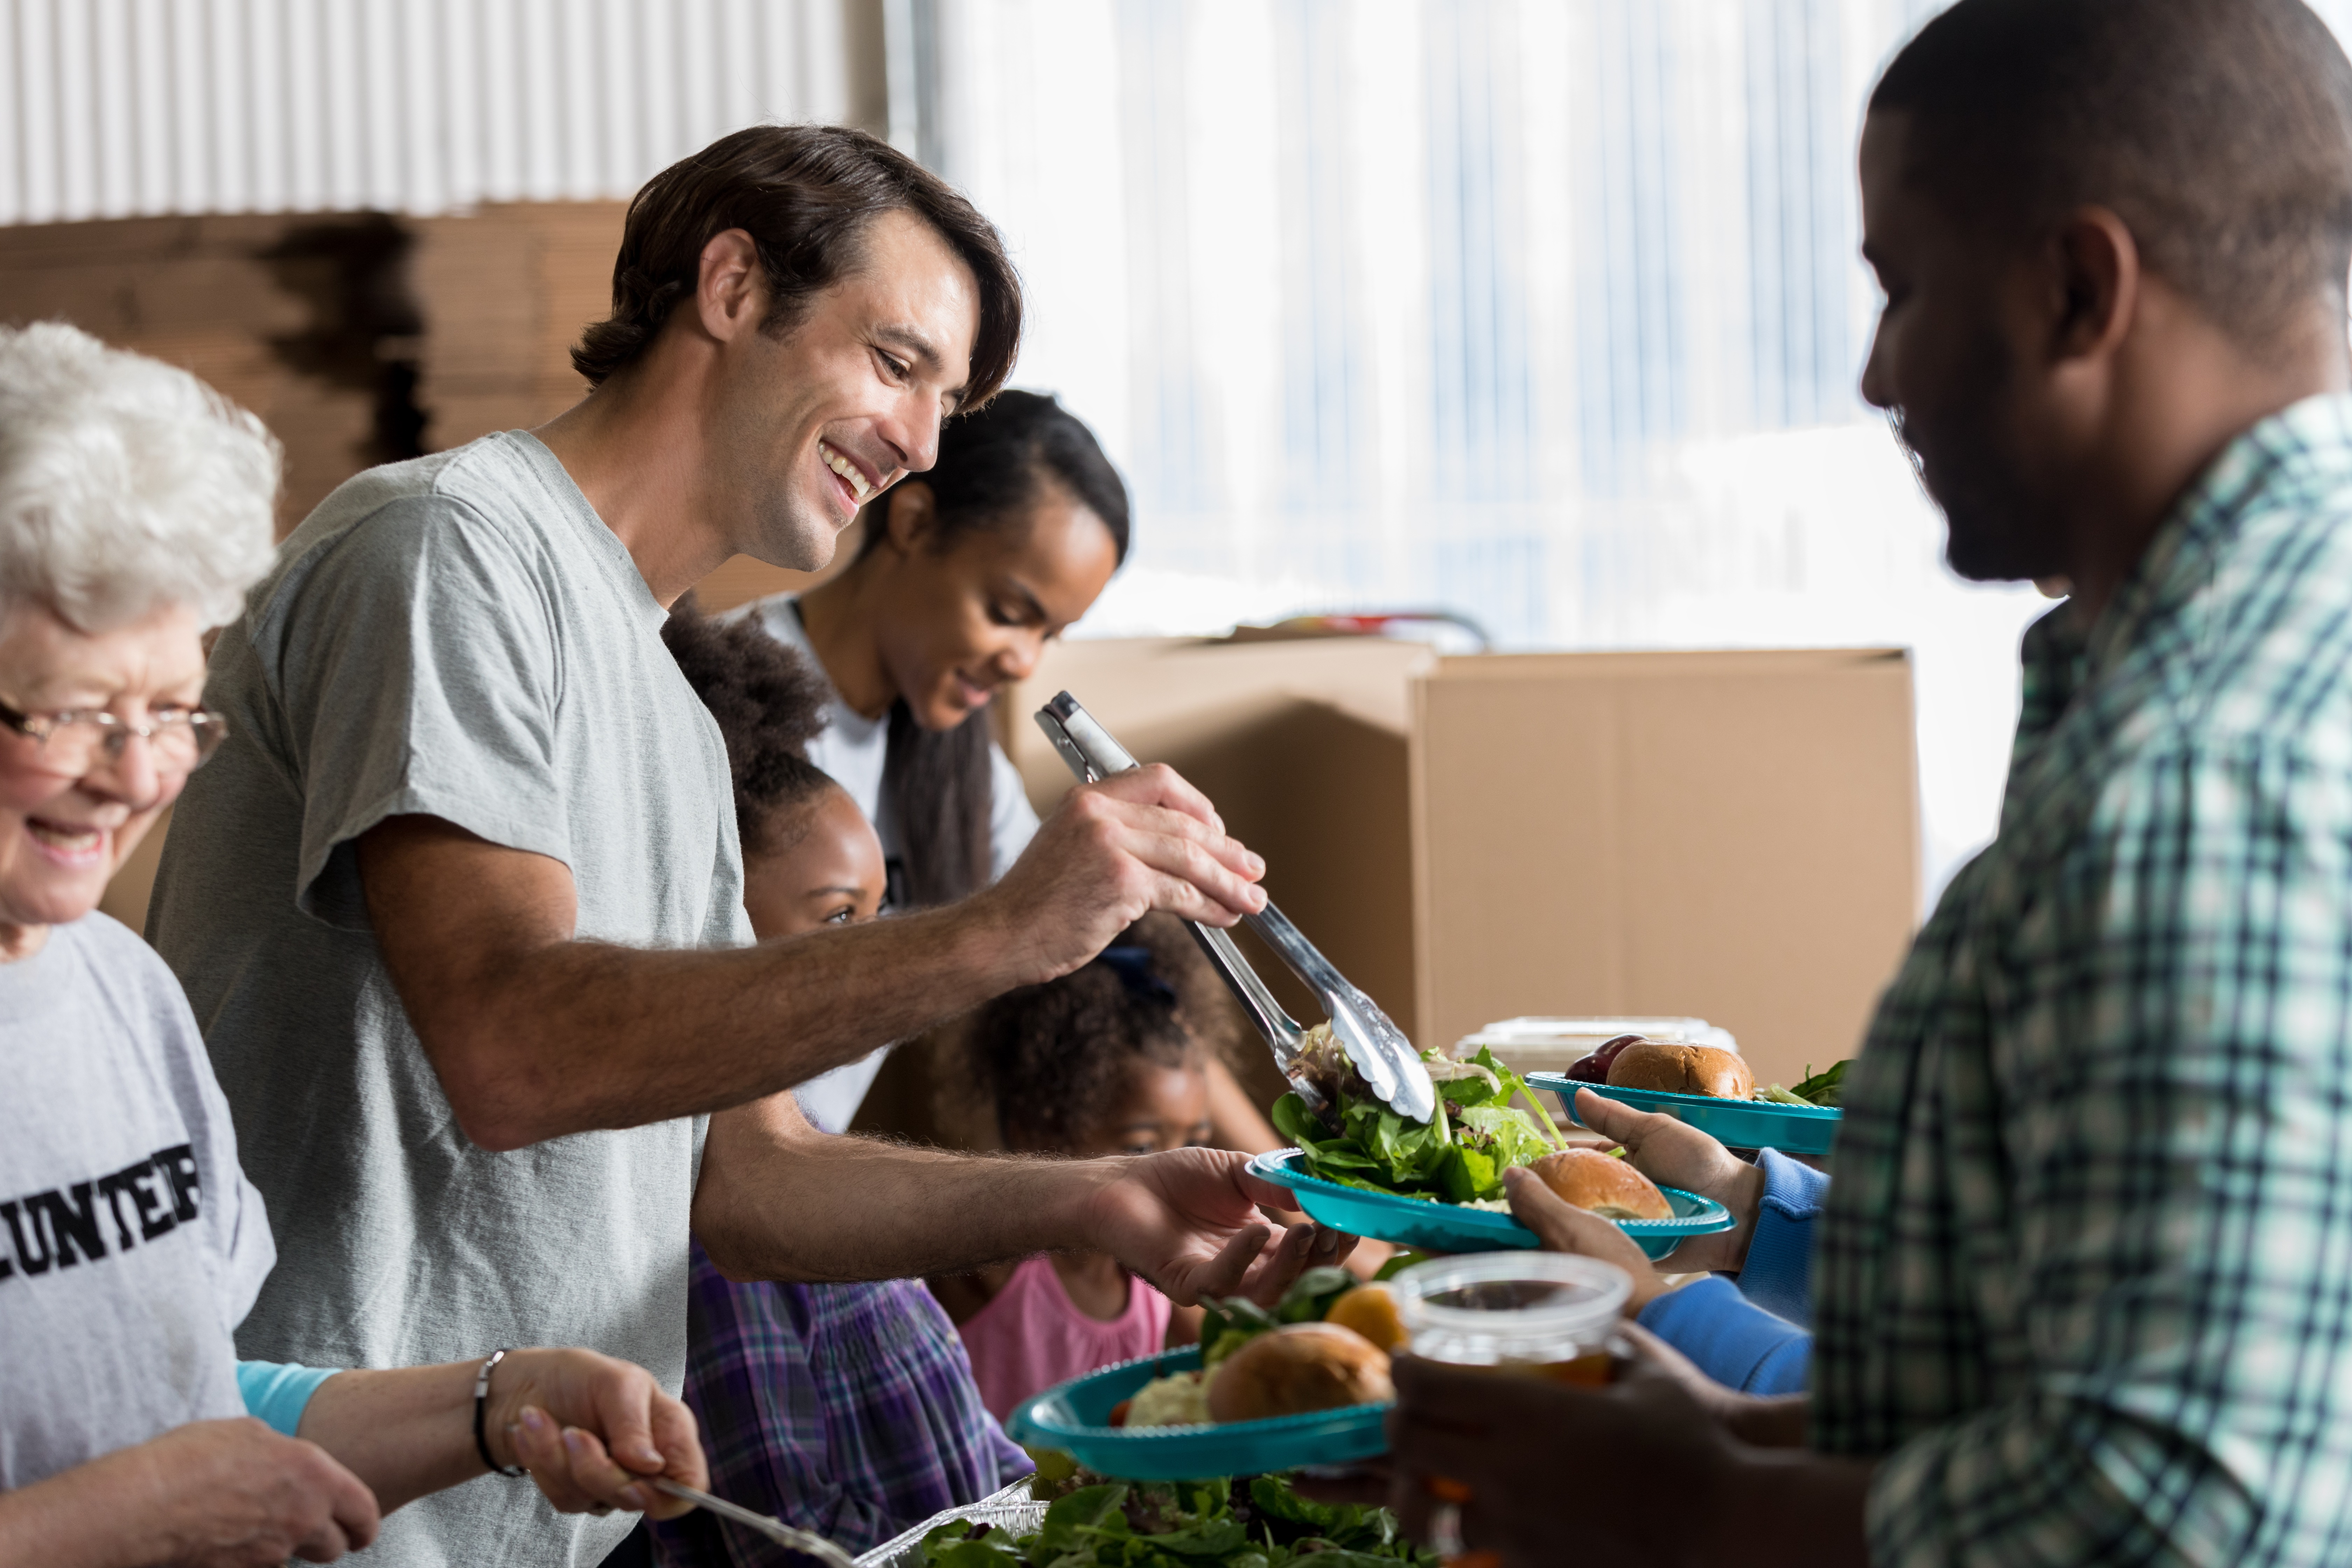 Adam Gersh Provides Tips for Employers with Charitable Components